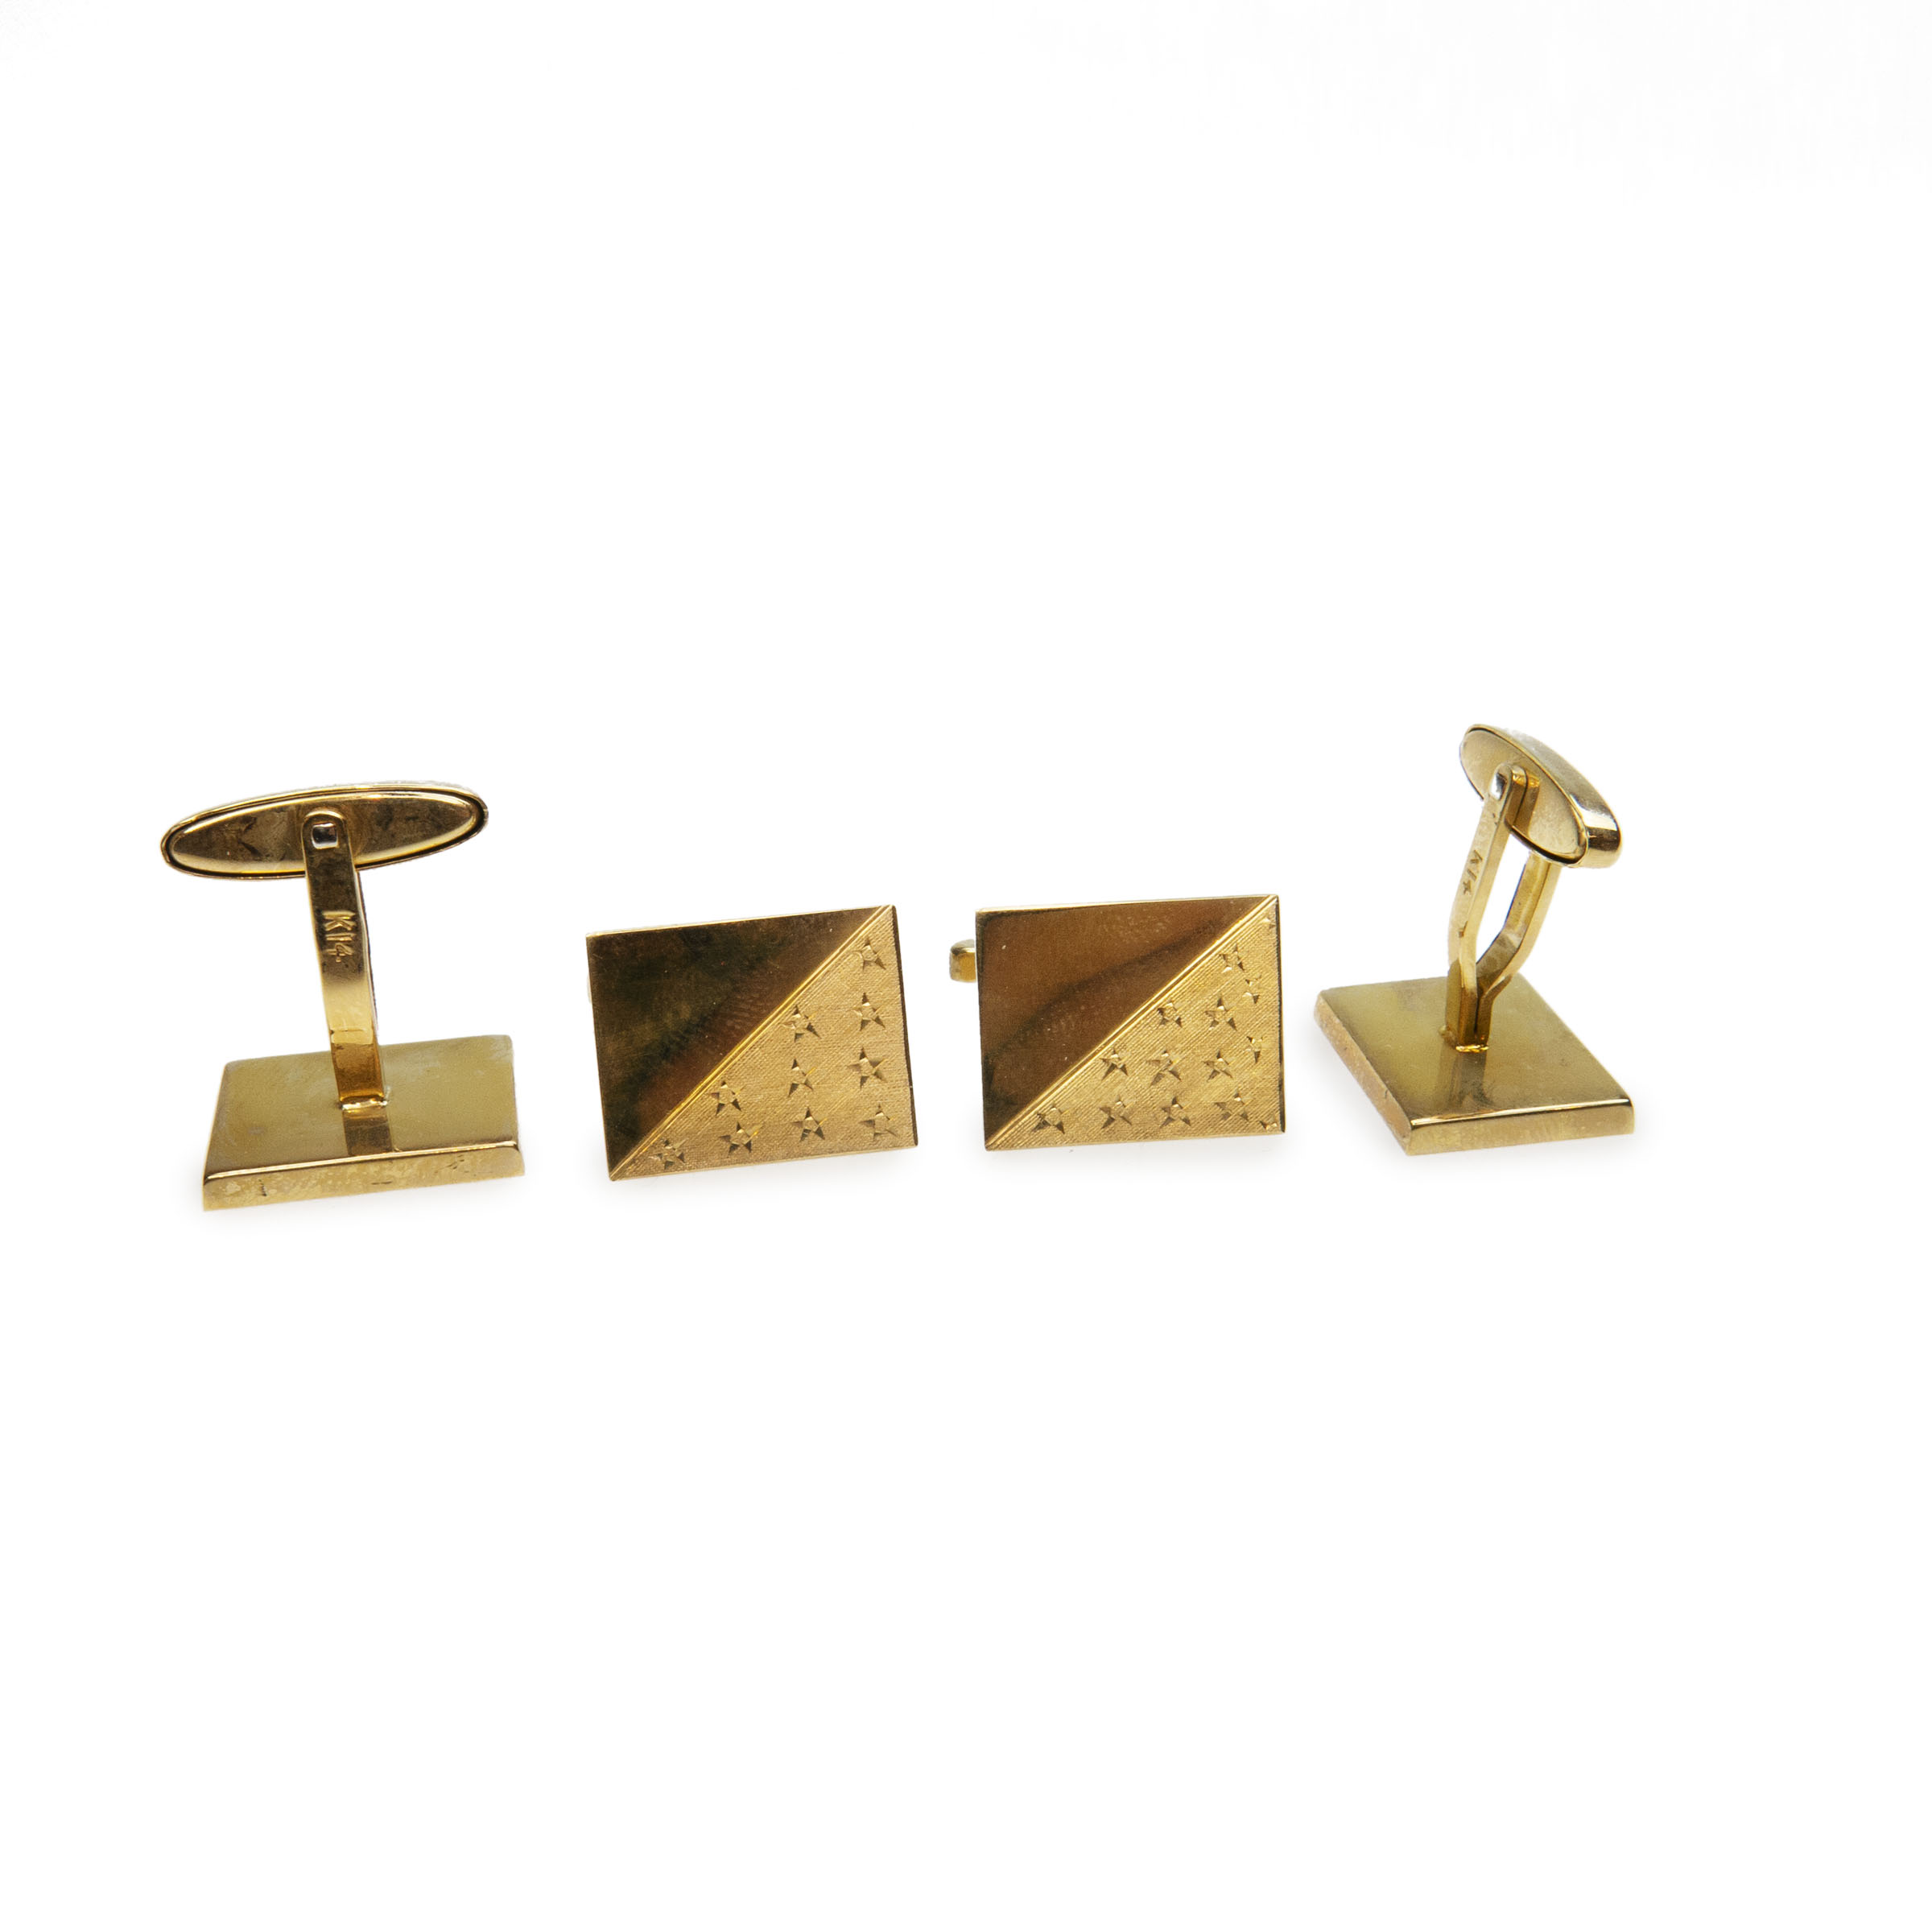 2 X Pairs Of 14K Yellow Gold Cufflinks